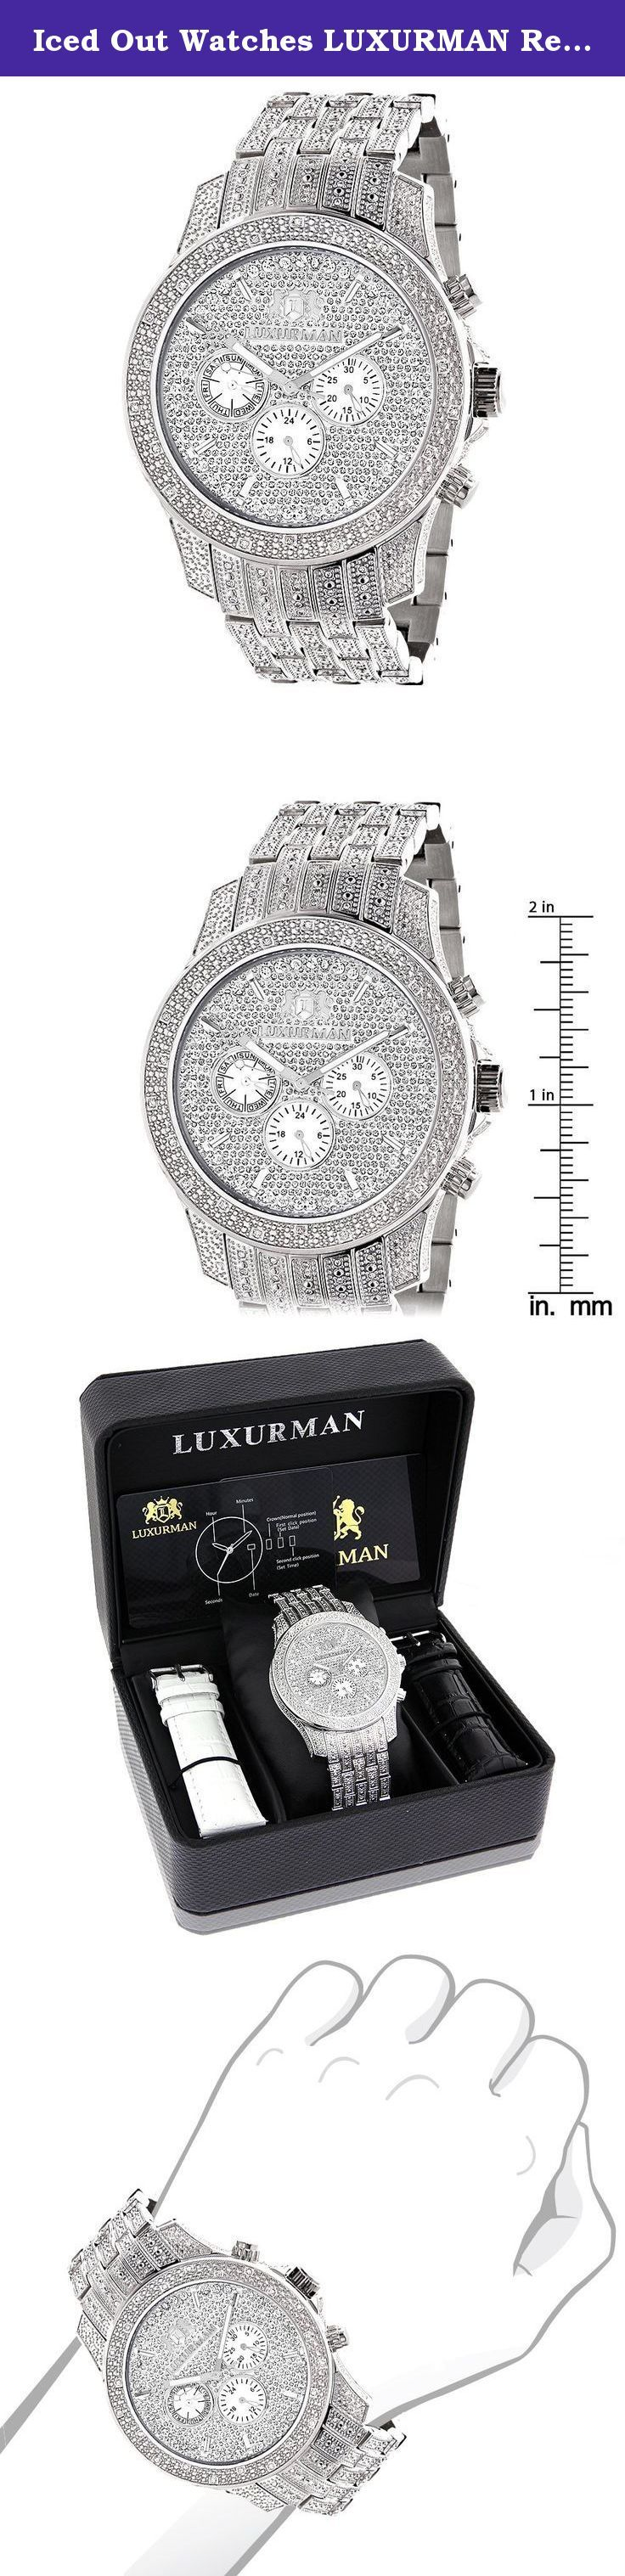 Iced Out Watches LUXURMAN Real Diamond Watch for Men in Stainless Steel with Diamond Band 1.25ct. Affordable Iced Out Watches for men! This LUXURMAN Mens Diamond Watch with diamond band features 1.25 carats of genuine diamonds masterfully set on the bezel, sides, lugs and the band of this silver stainless steel watch. The face of this LUXURMAN wrist watch showcases three white mother of pearl chronograph subdials and a date display at 4 o'clock. This diamond watch for men is…